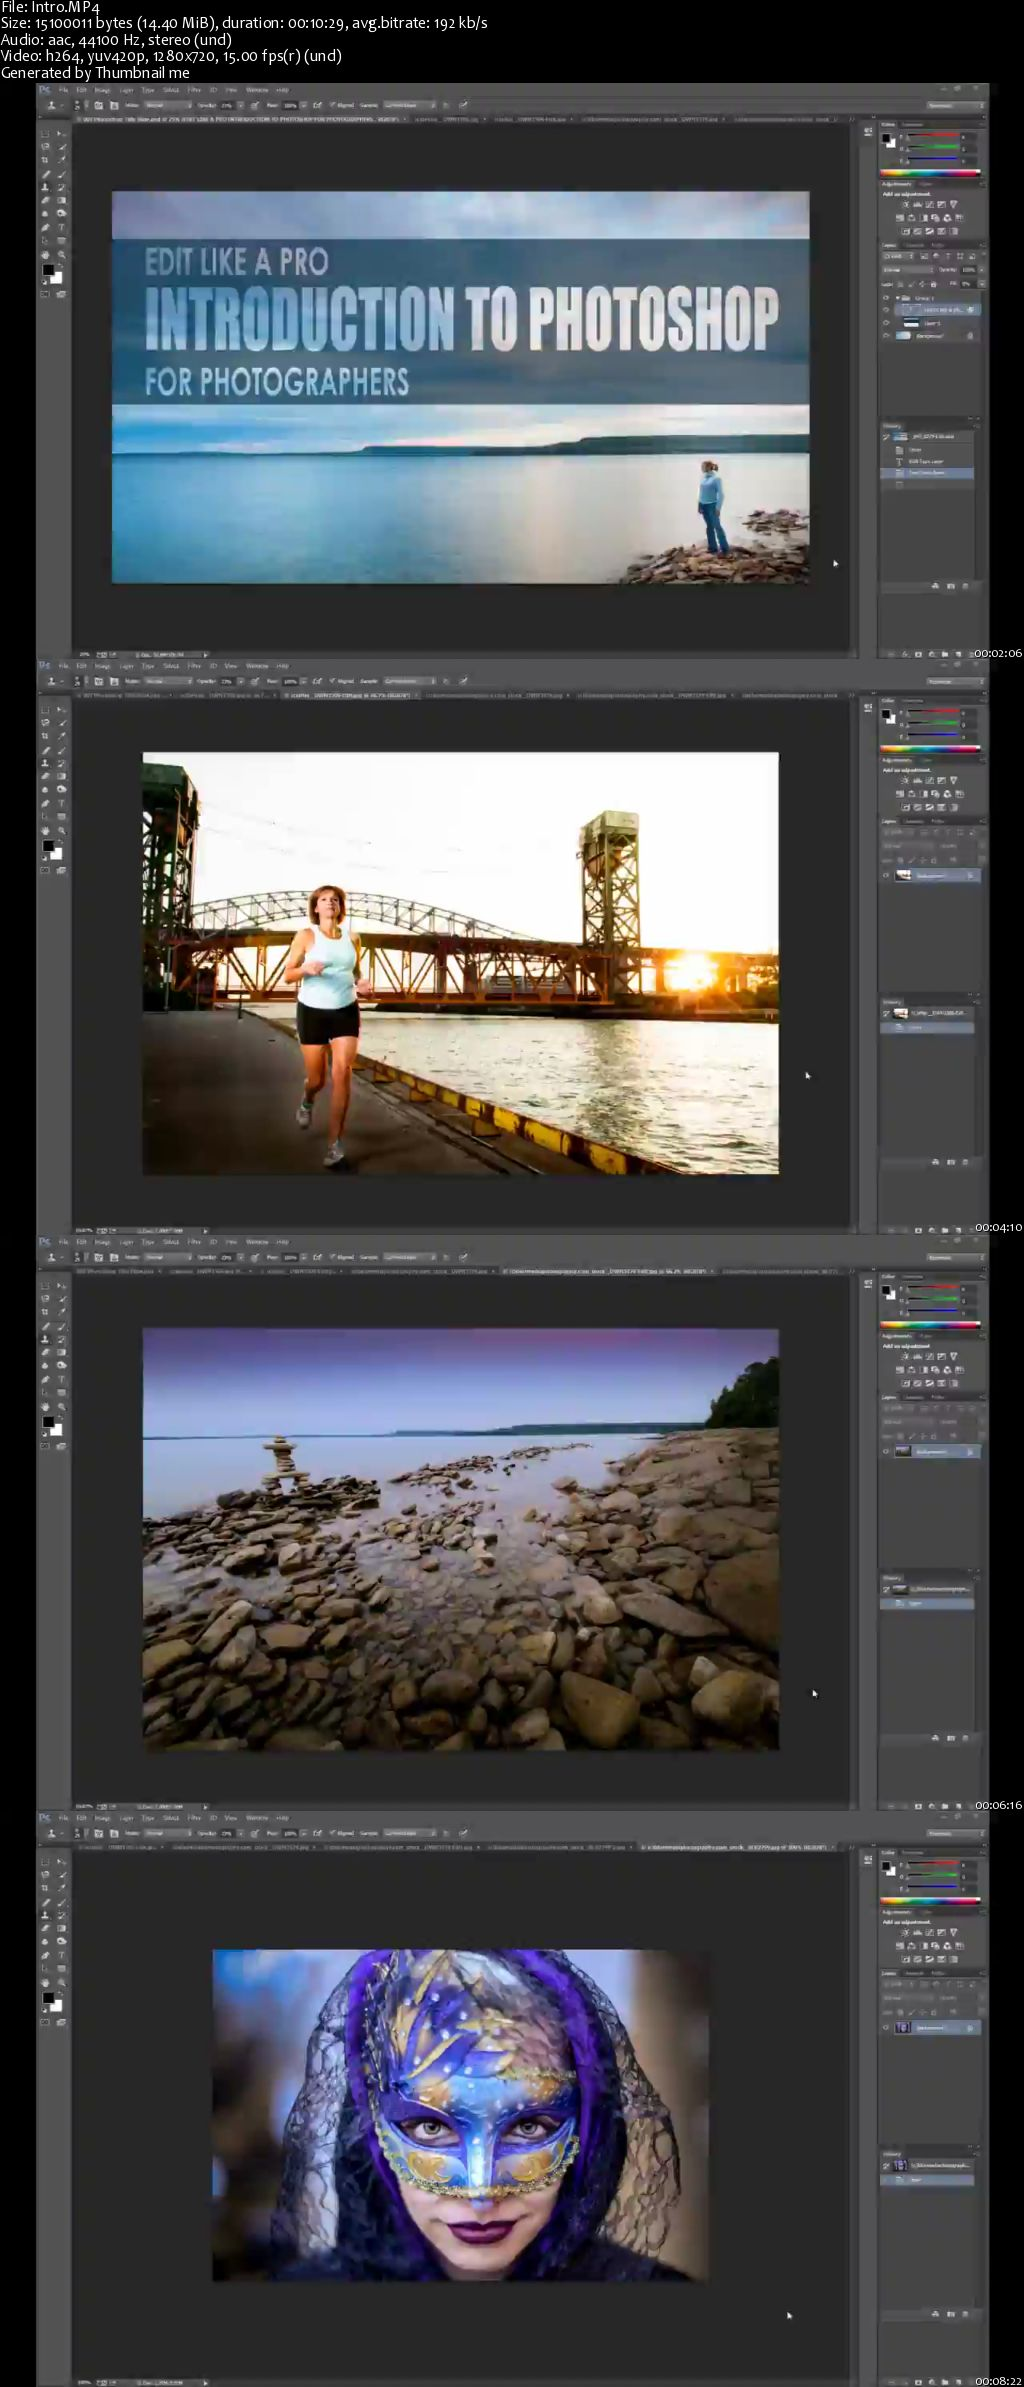 Edit Like a Pro: Photoshop for Photographers